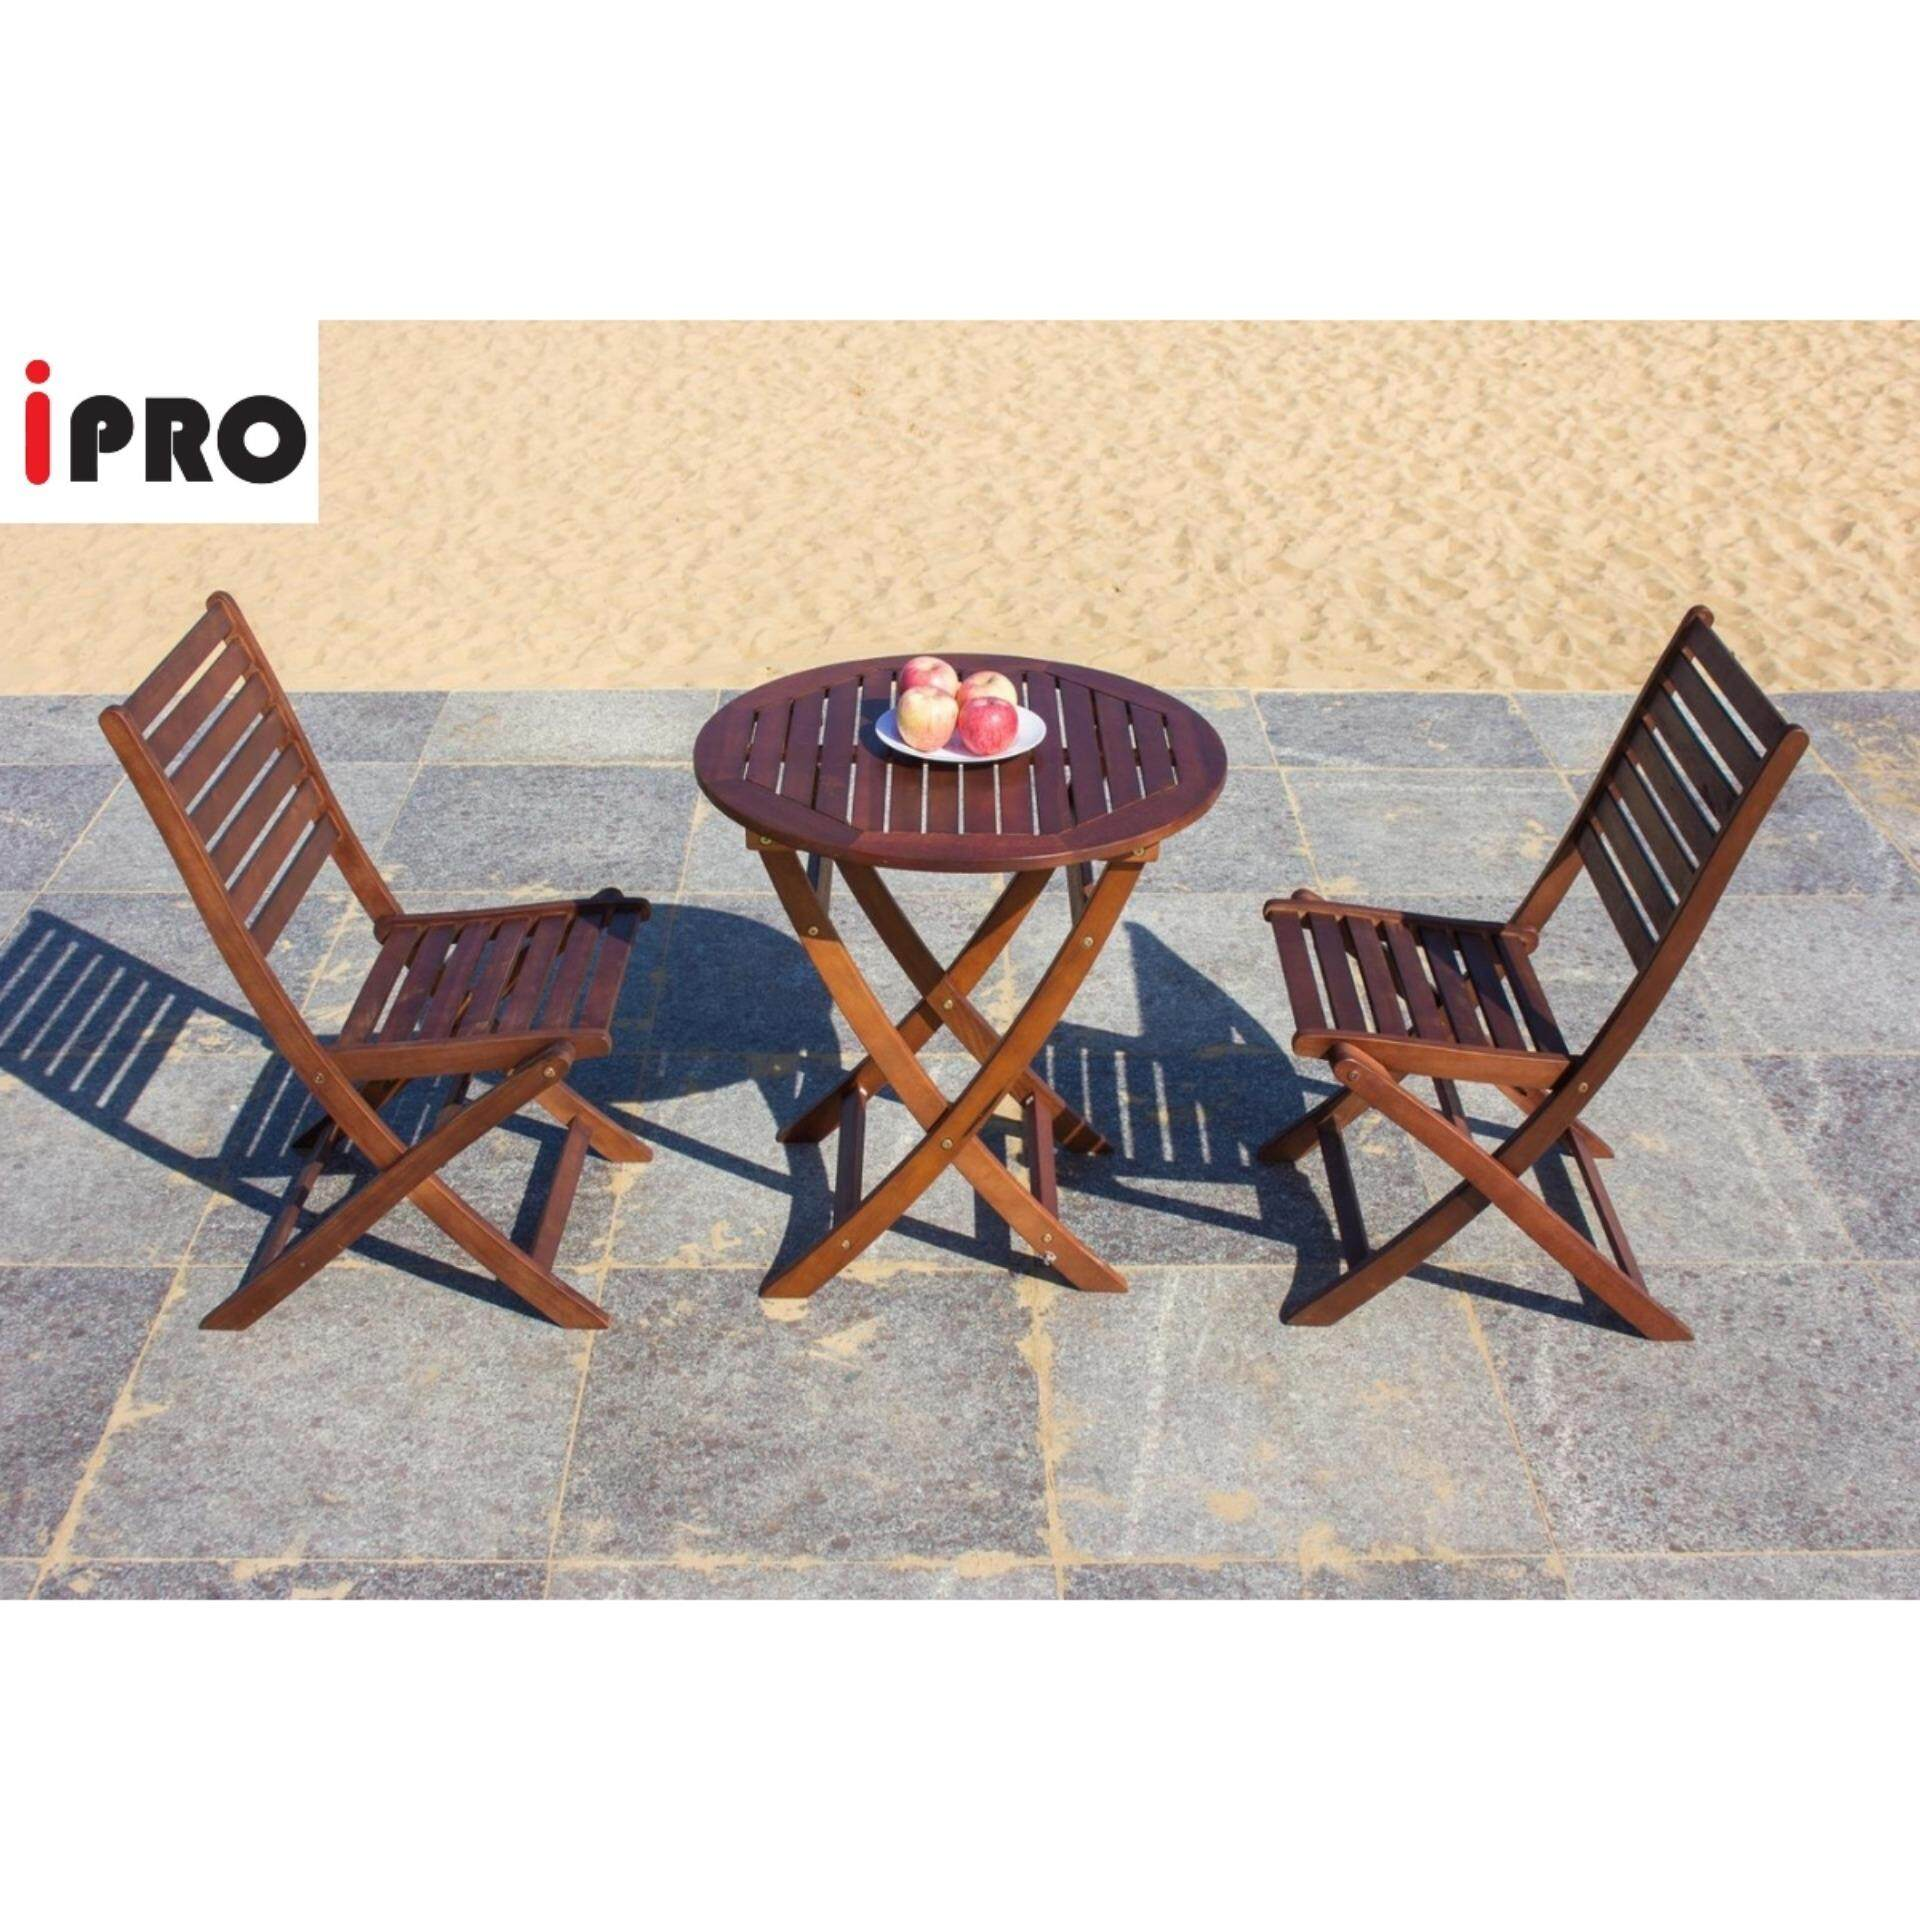 IPRO Outdoor Wooden Table & Chair / Patio Garden furniture-Round Table 70 cm with 2 Folding Chair